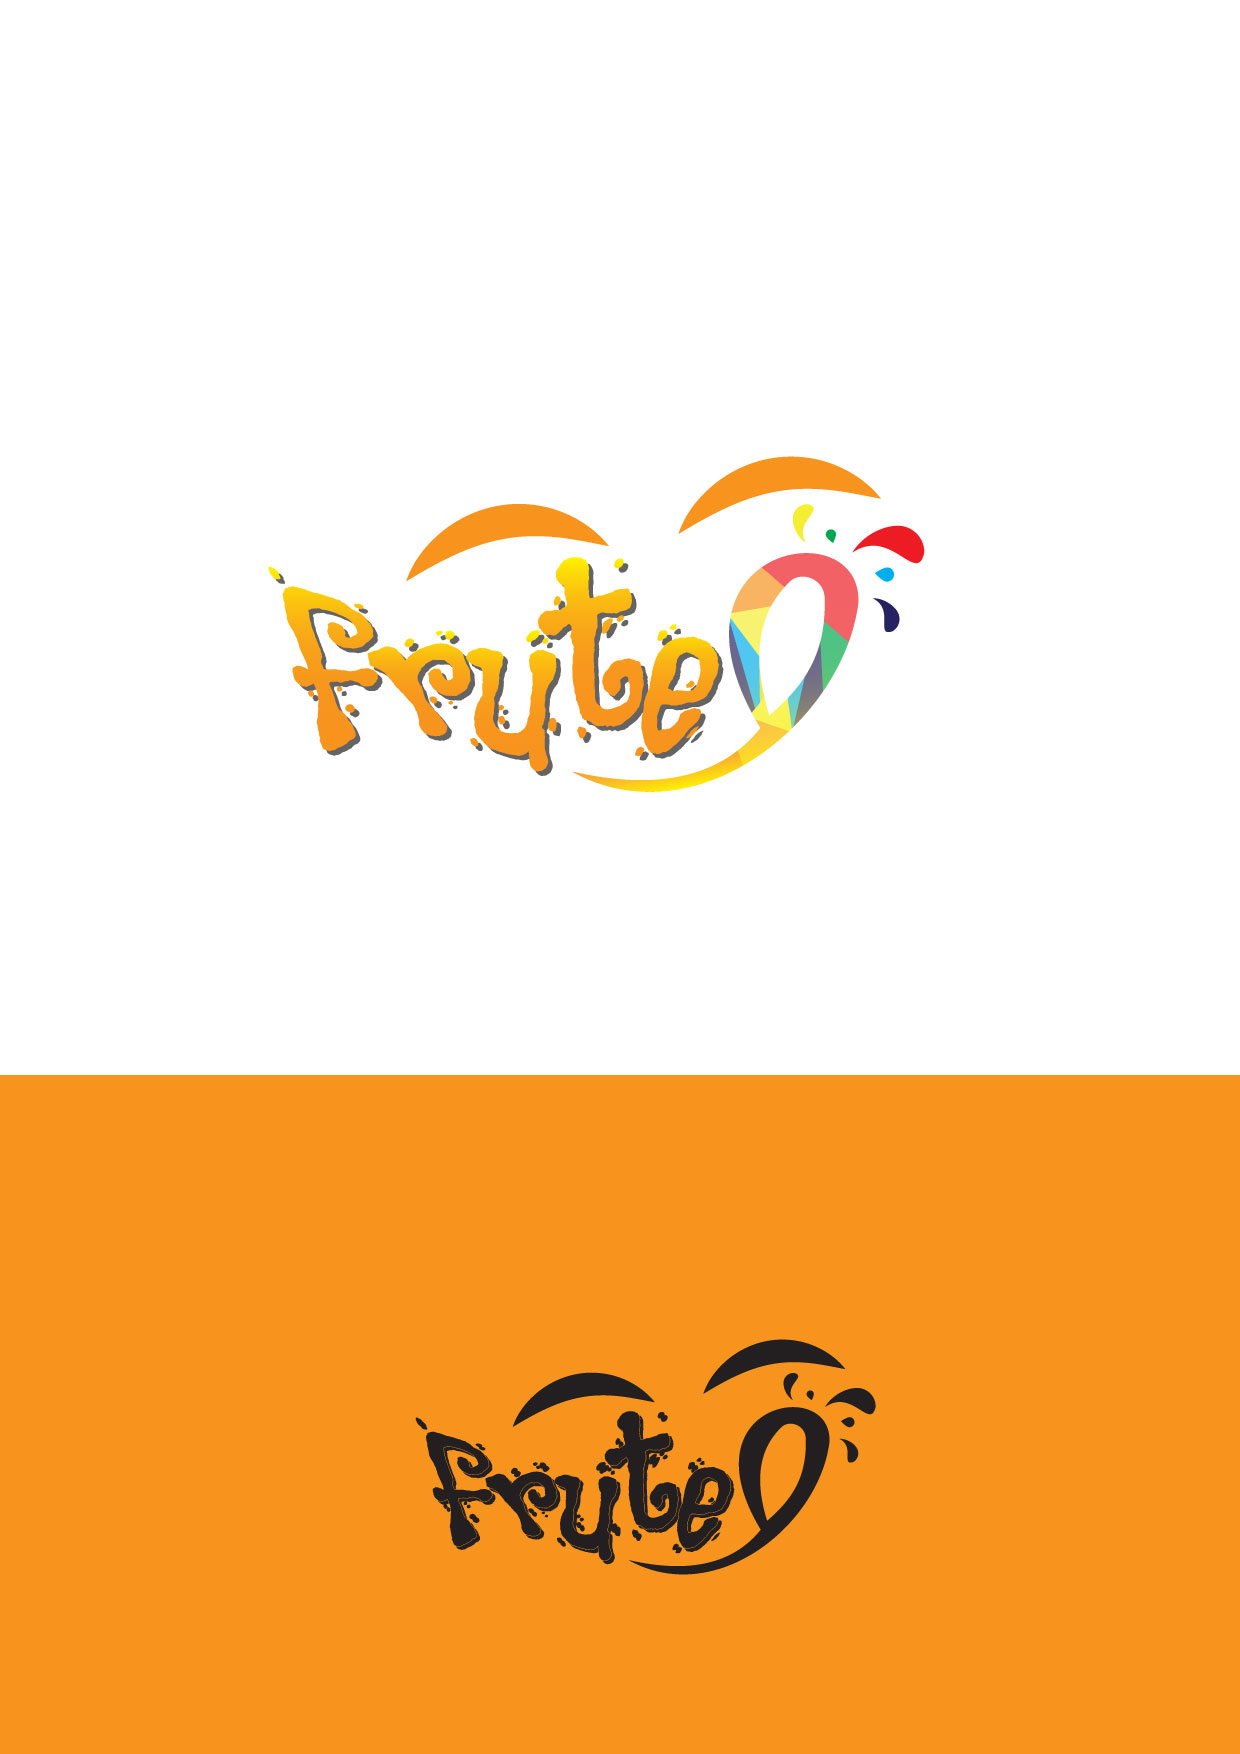 Logo Design by Dit L Pambudi - Entry No. 75 in the Logo Design Contest Imaginative Logo Design for Fruté.